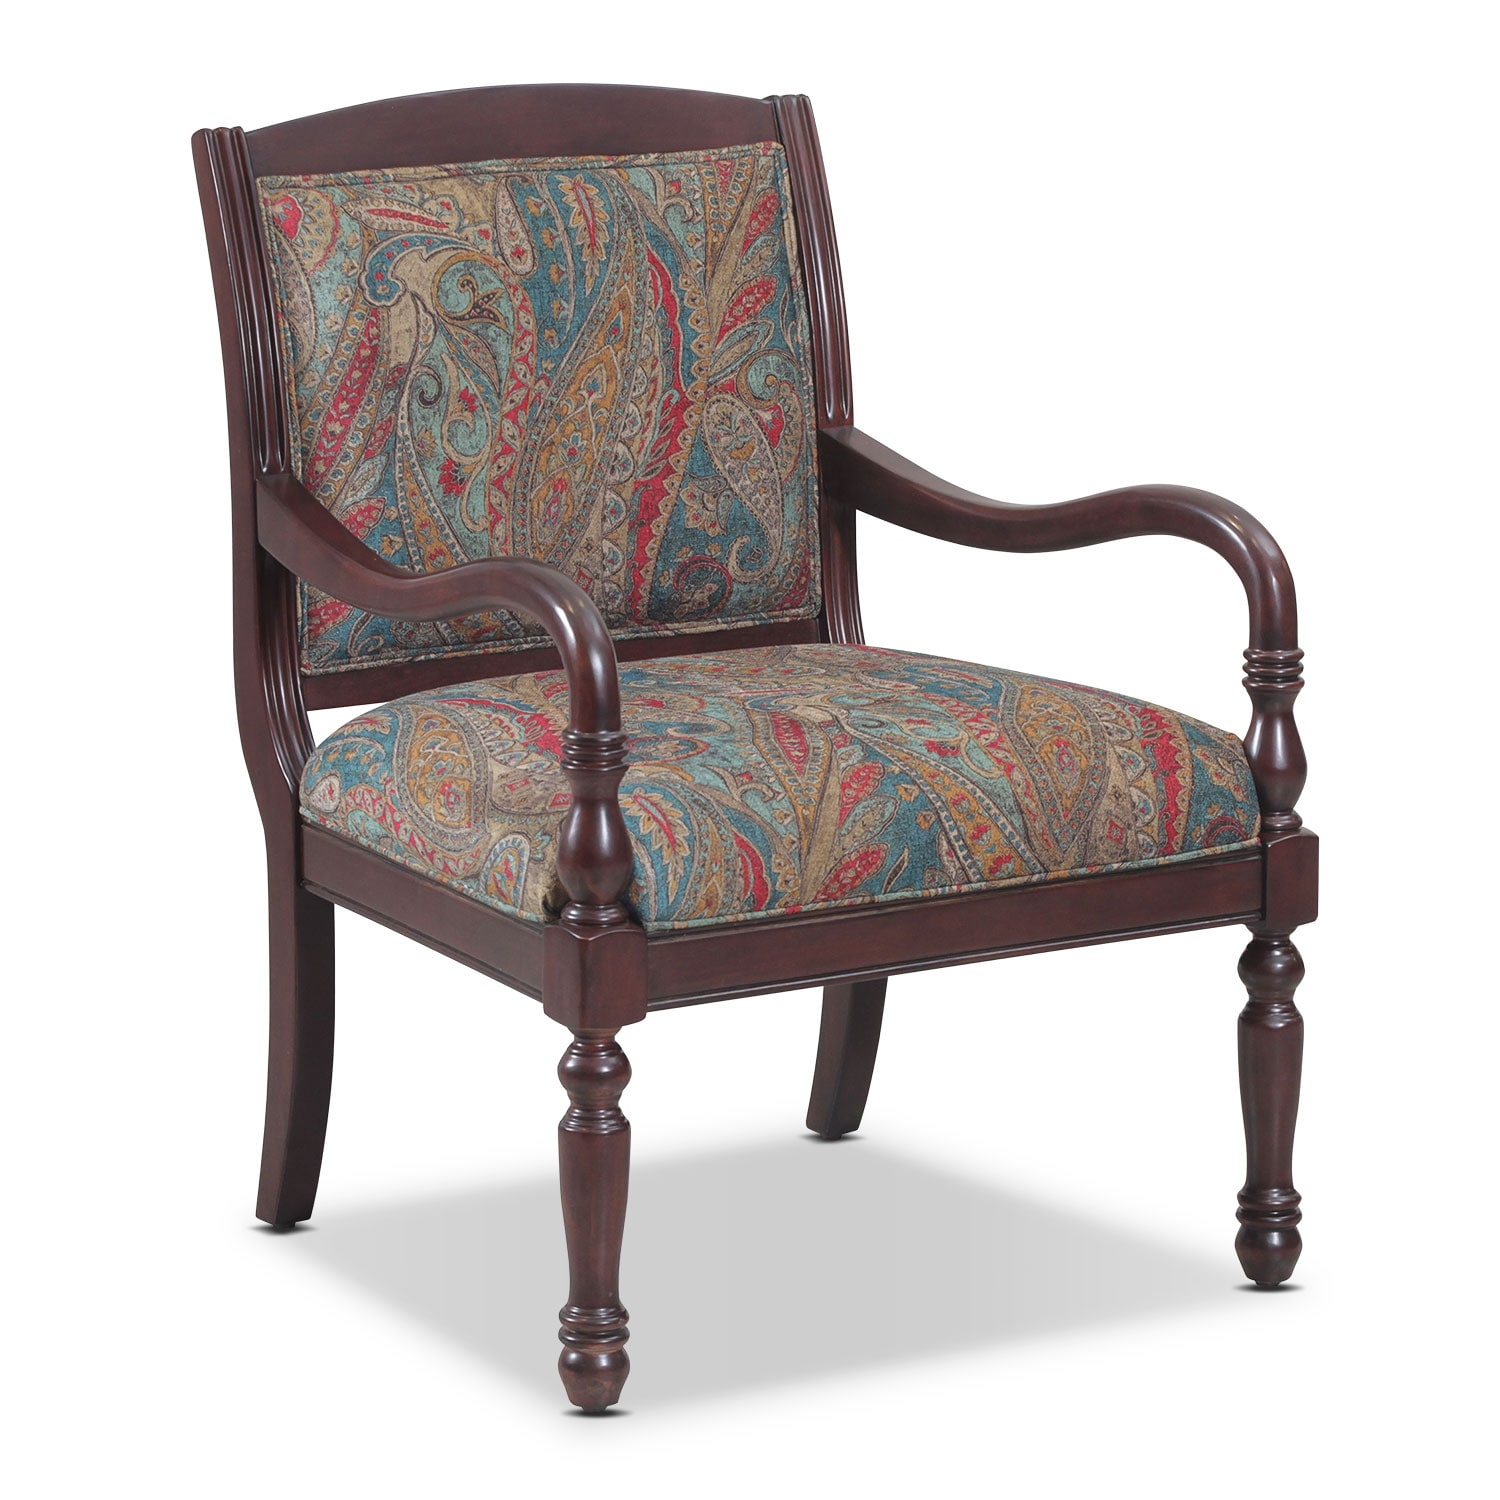 Living Room Furniture - Cadence Accent Chair - Paisley